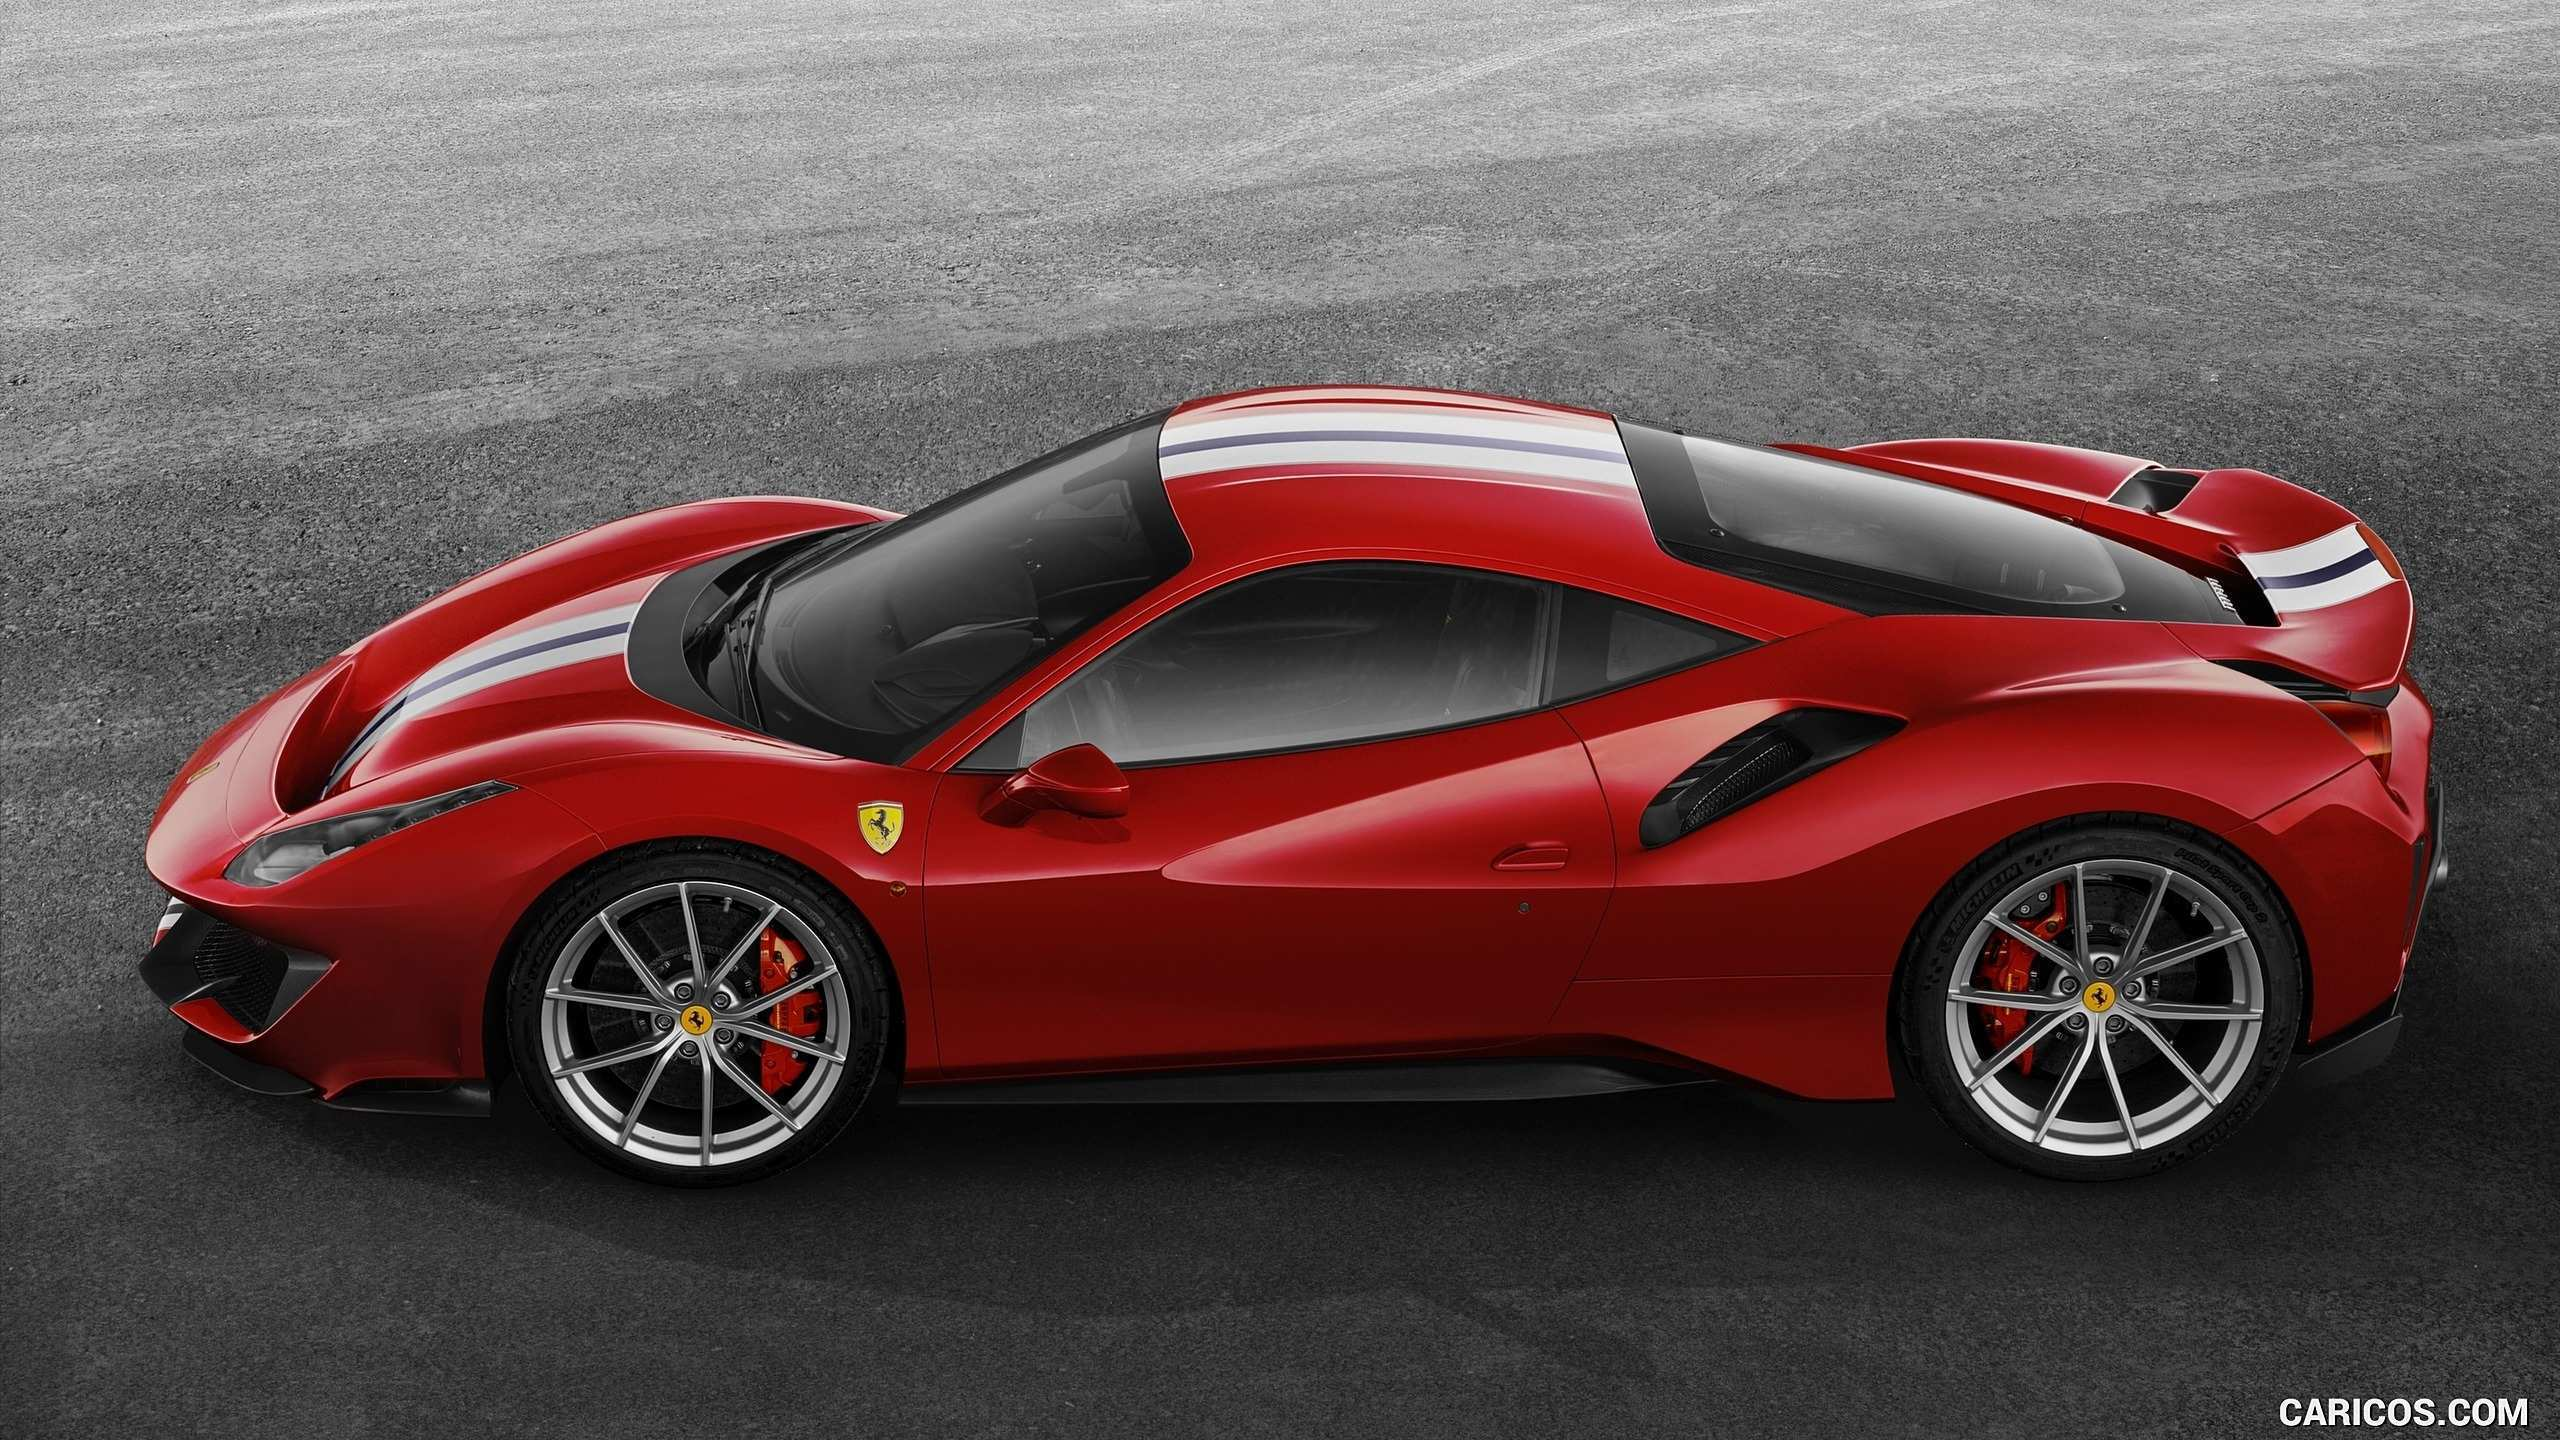 90 Best Review 2019 Ferrari Dino Price Ratings by 2019 Ferrari Dino Price